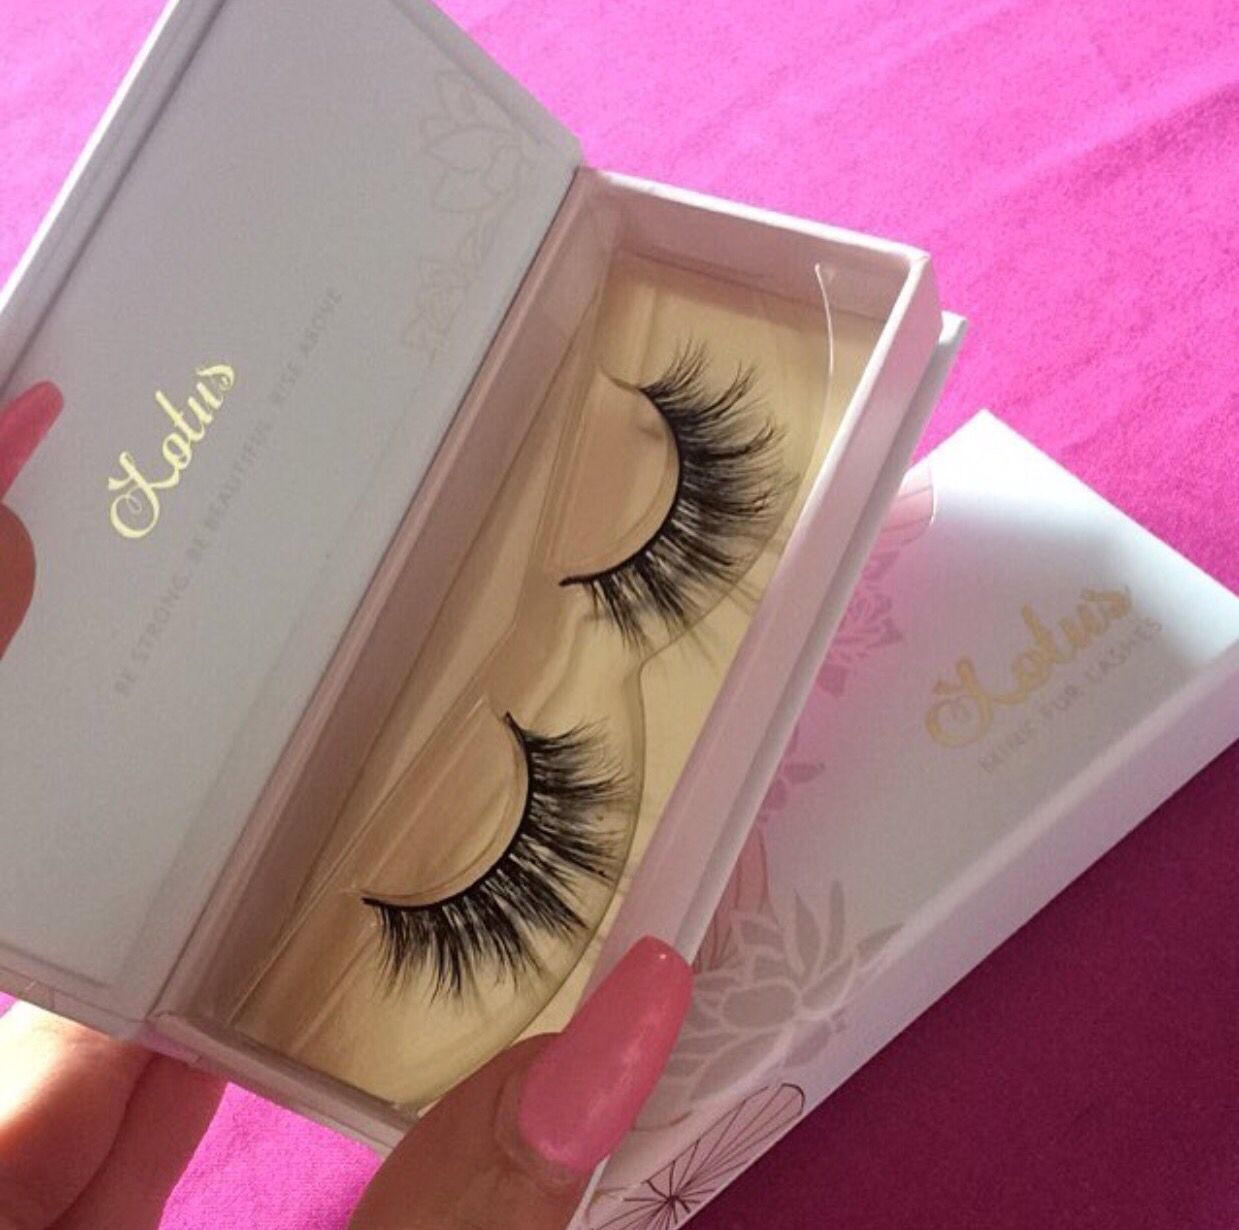 7535cafdbfc Best seller: Our LOTUS No. 410 lashes are perfect for creating a glamorous  doll